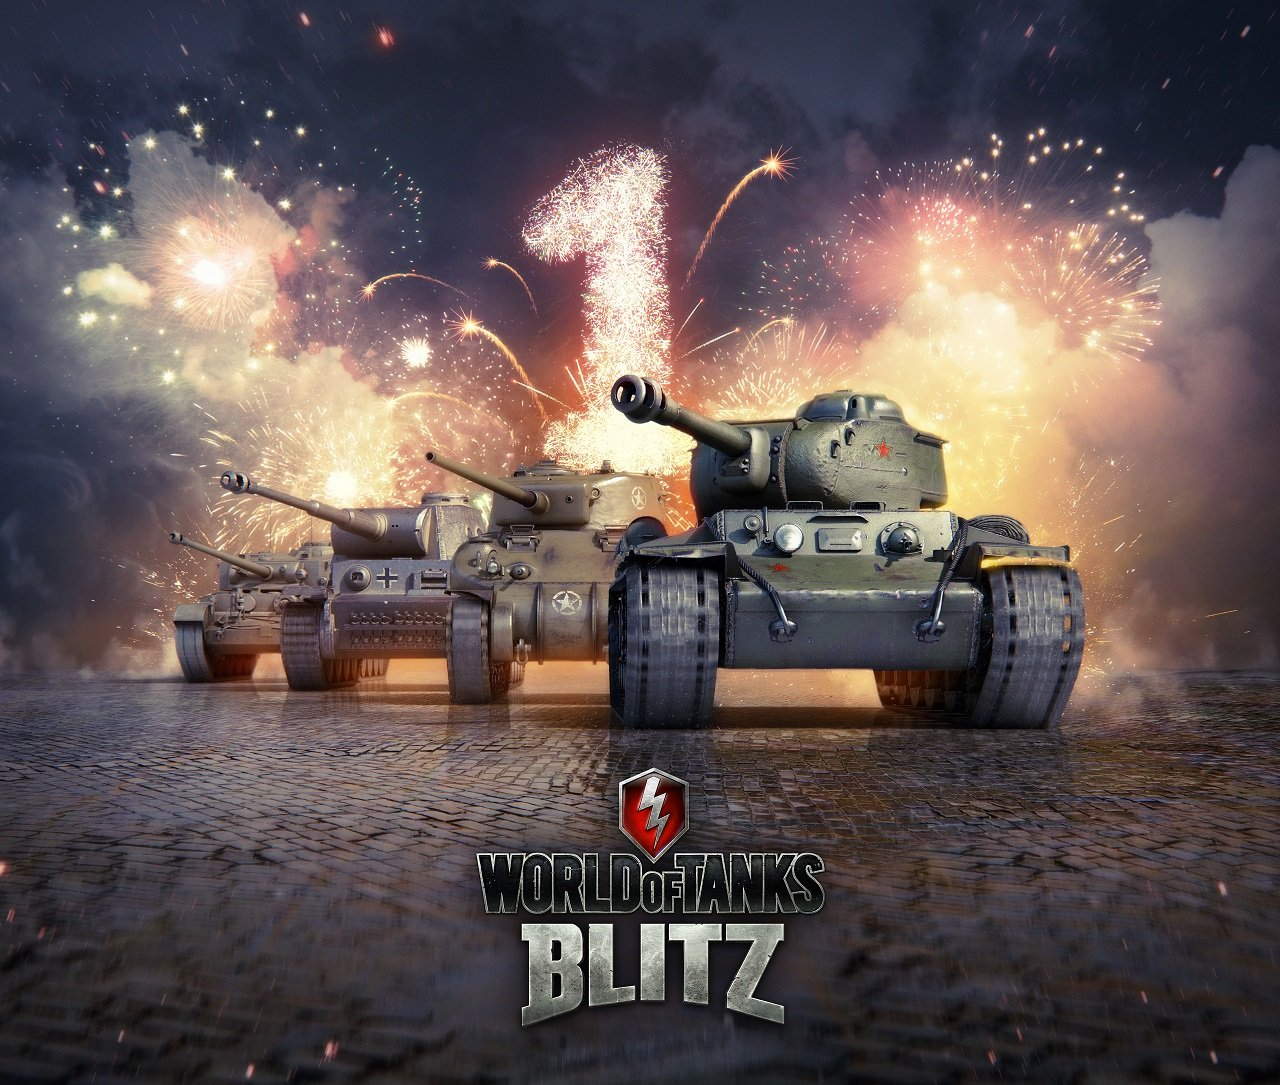 World of Tanks Blitz is celebrating its first anniversary with free tanks for all players